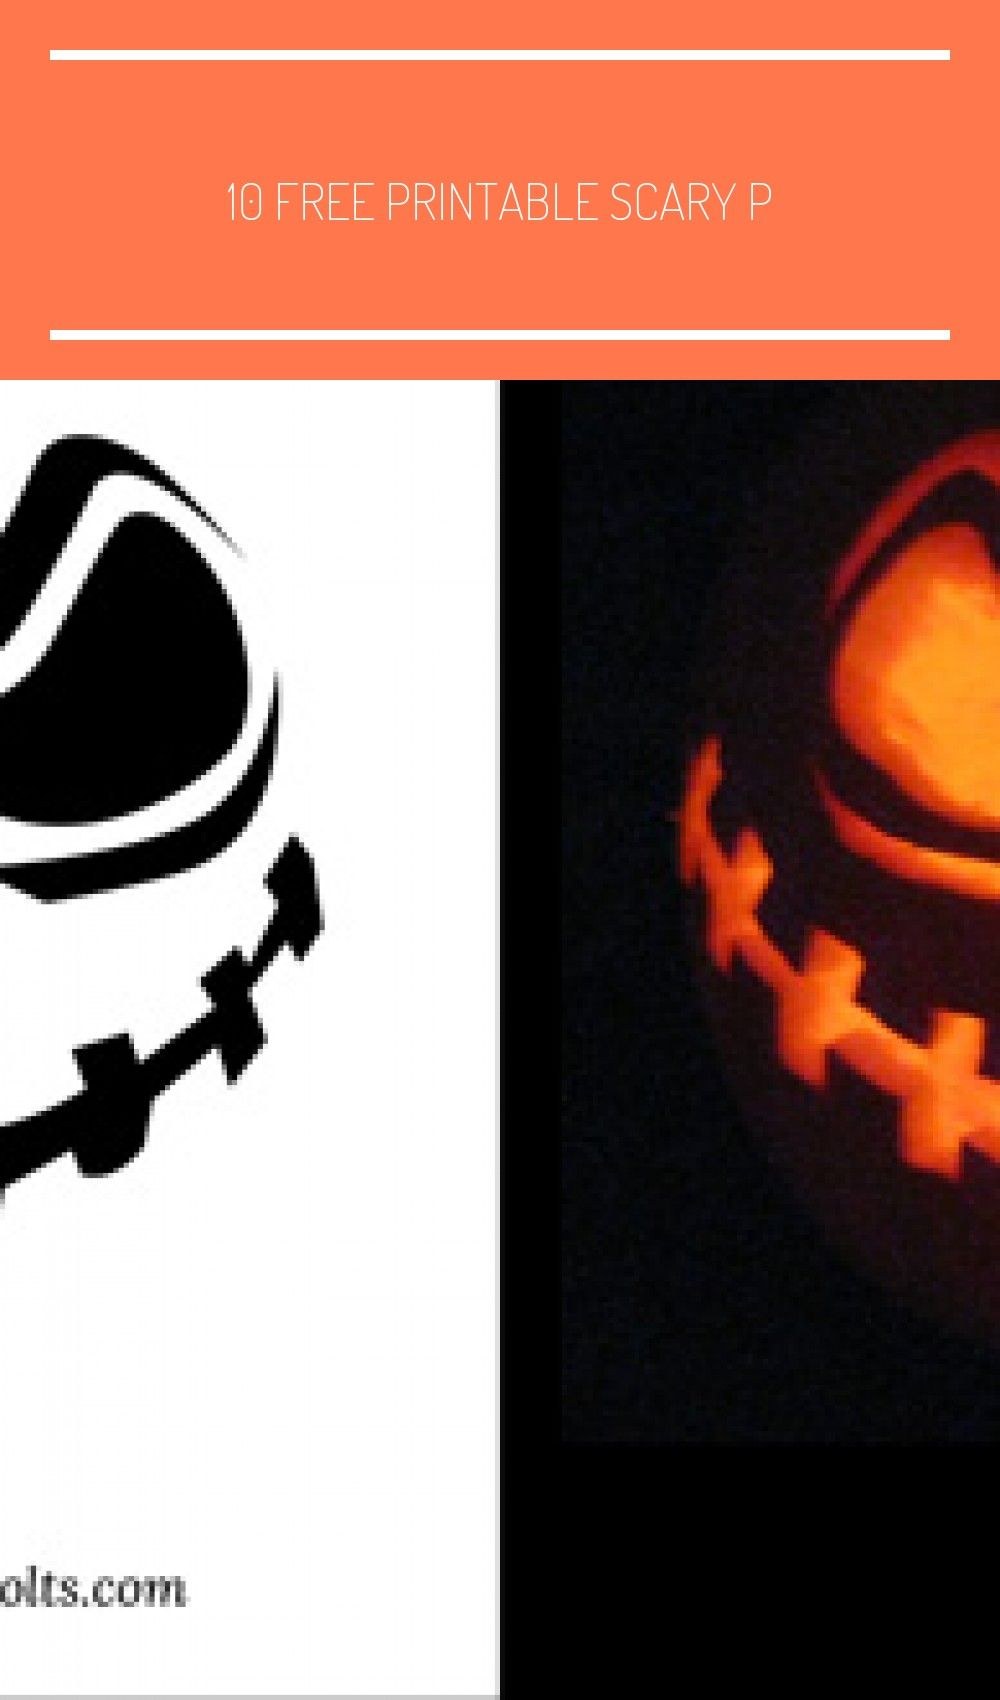 10 Free Printable Scary P Scary Pumpkin Carving Patterns Carving Designs Scary Pumpkin Carving